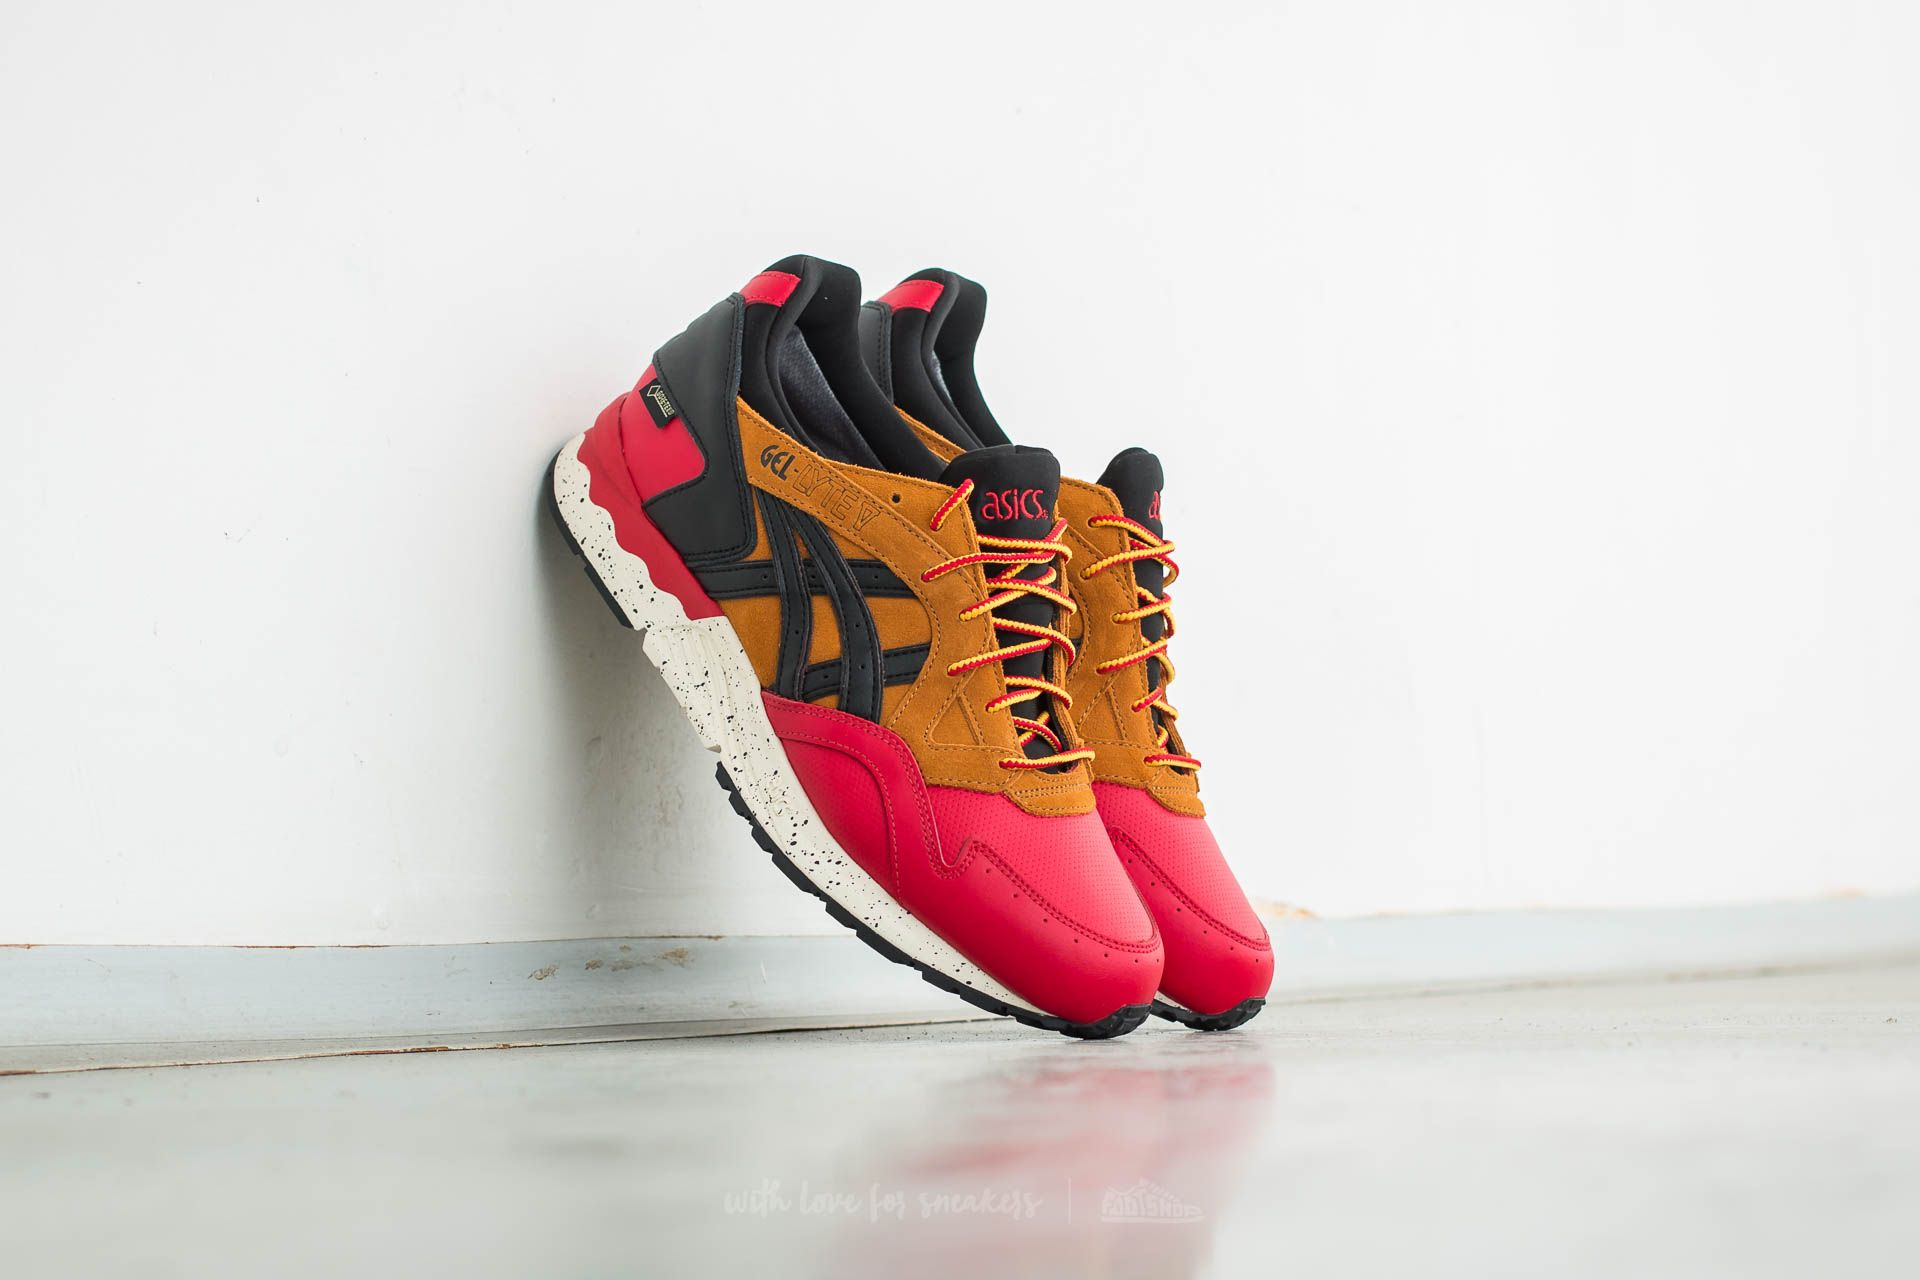 Asics Gel-Lyte V Goretex Red/ Black - 11934